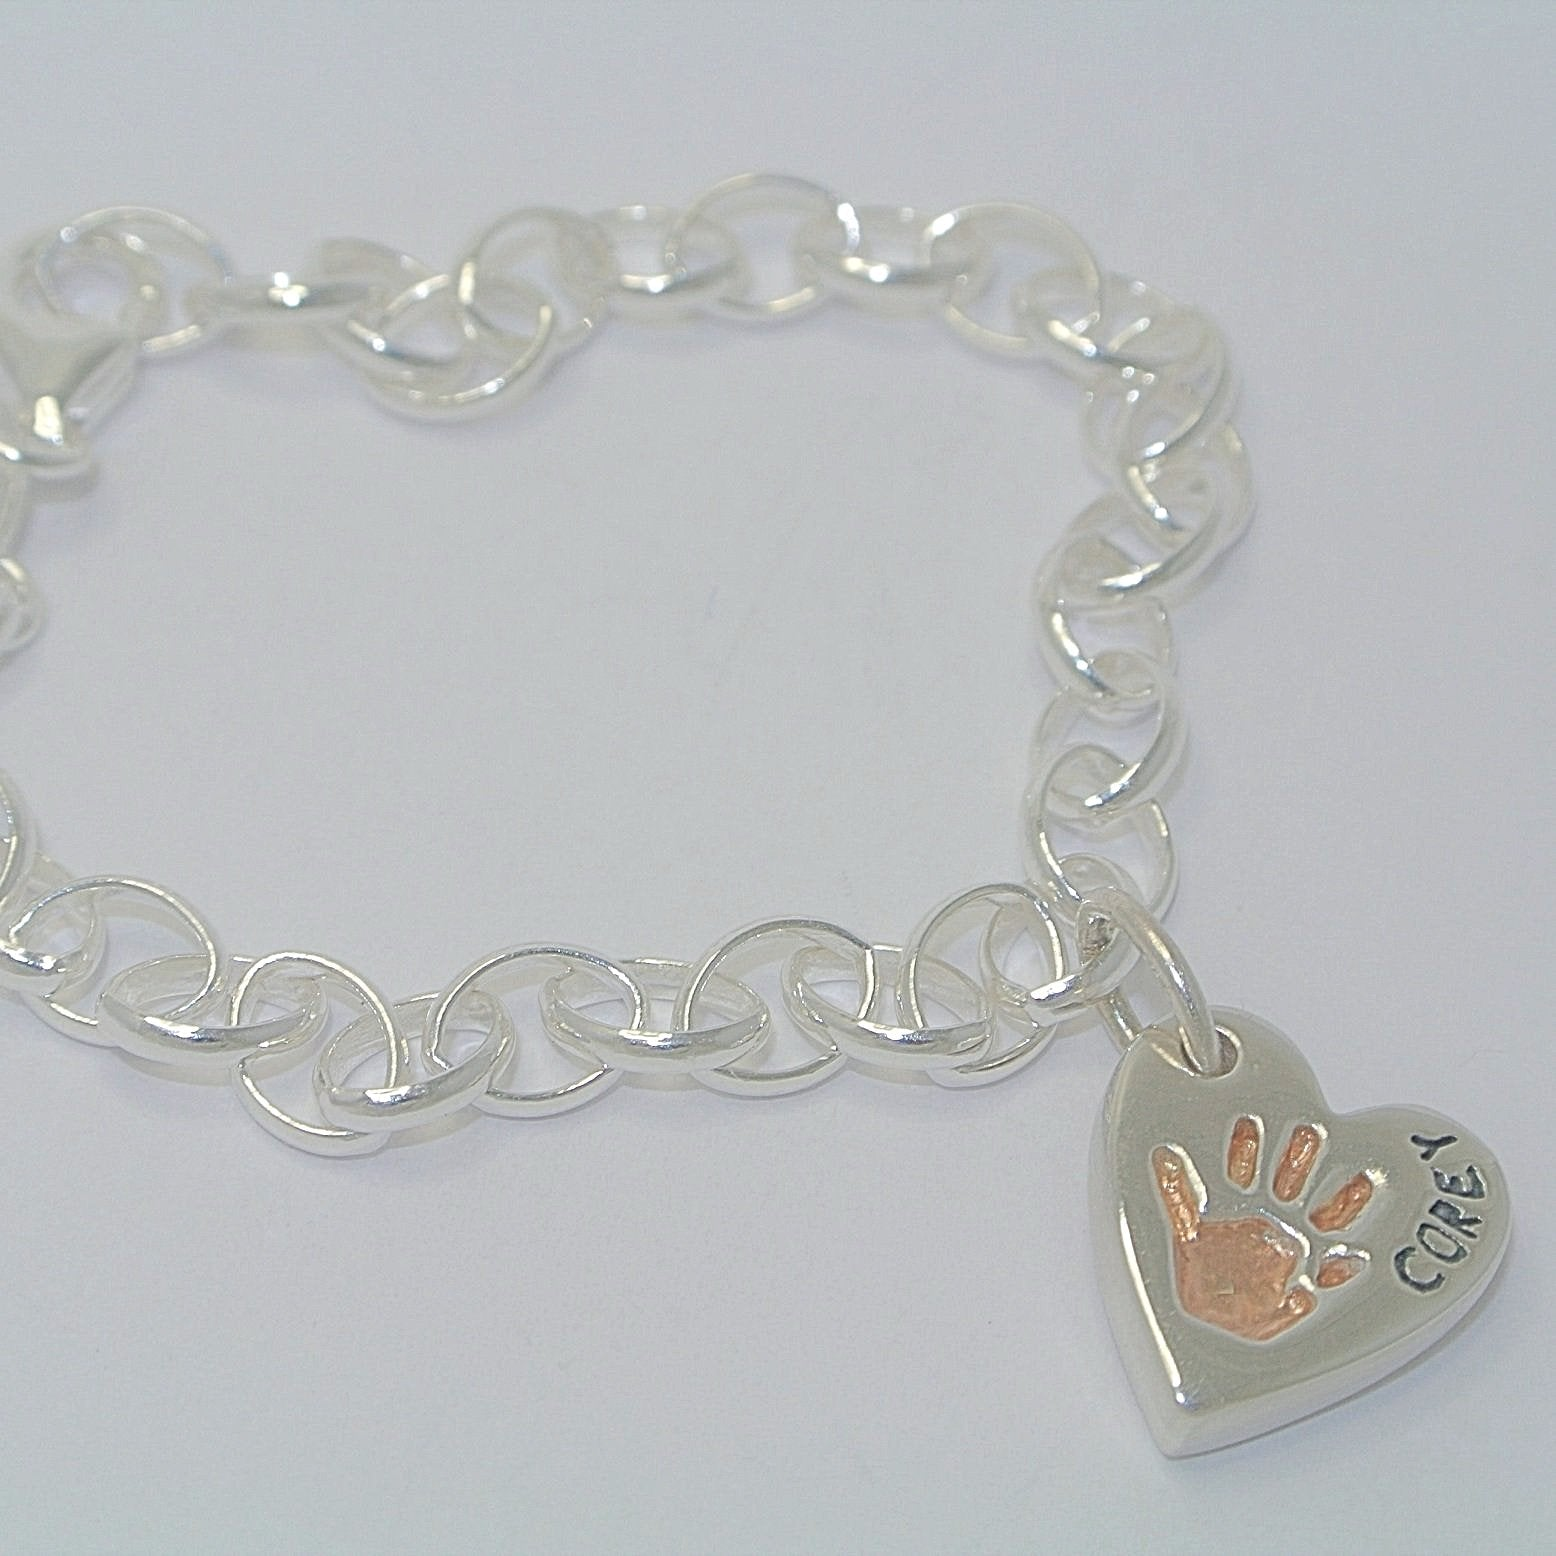 Heart Bracelet Charm with Rose Gold. Sterling Silver Handprint Jewellery